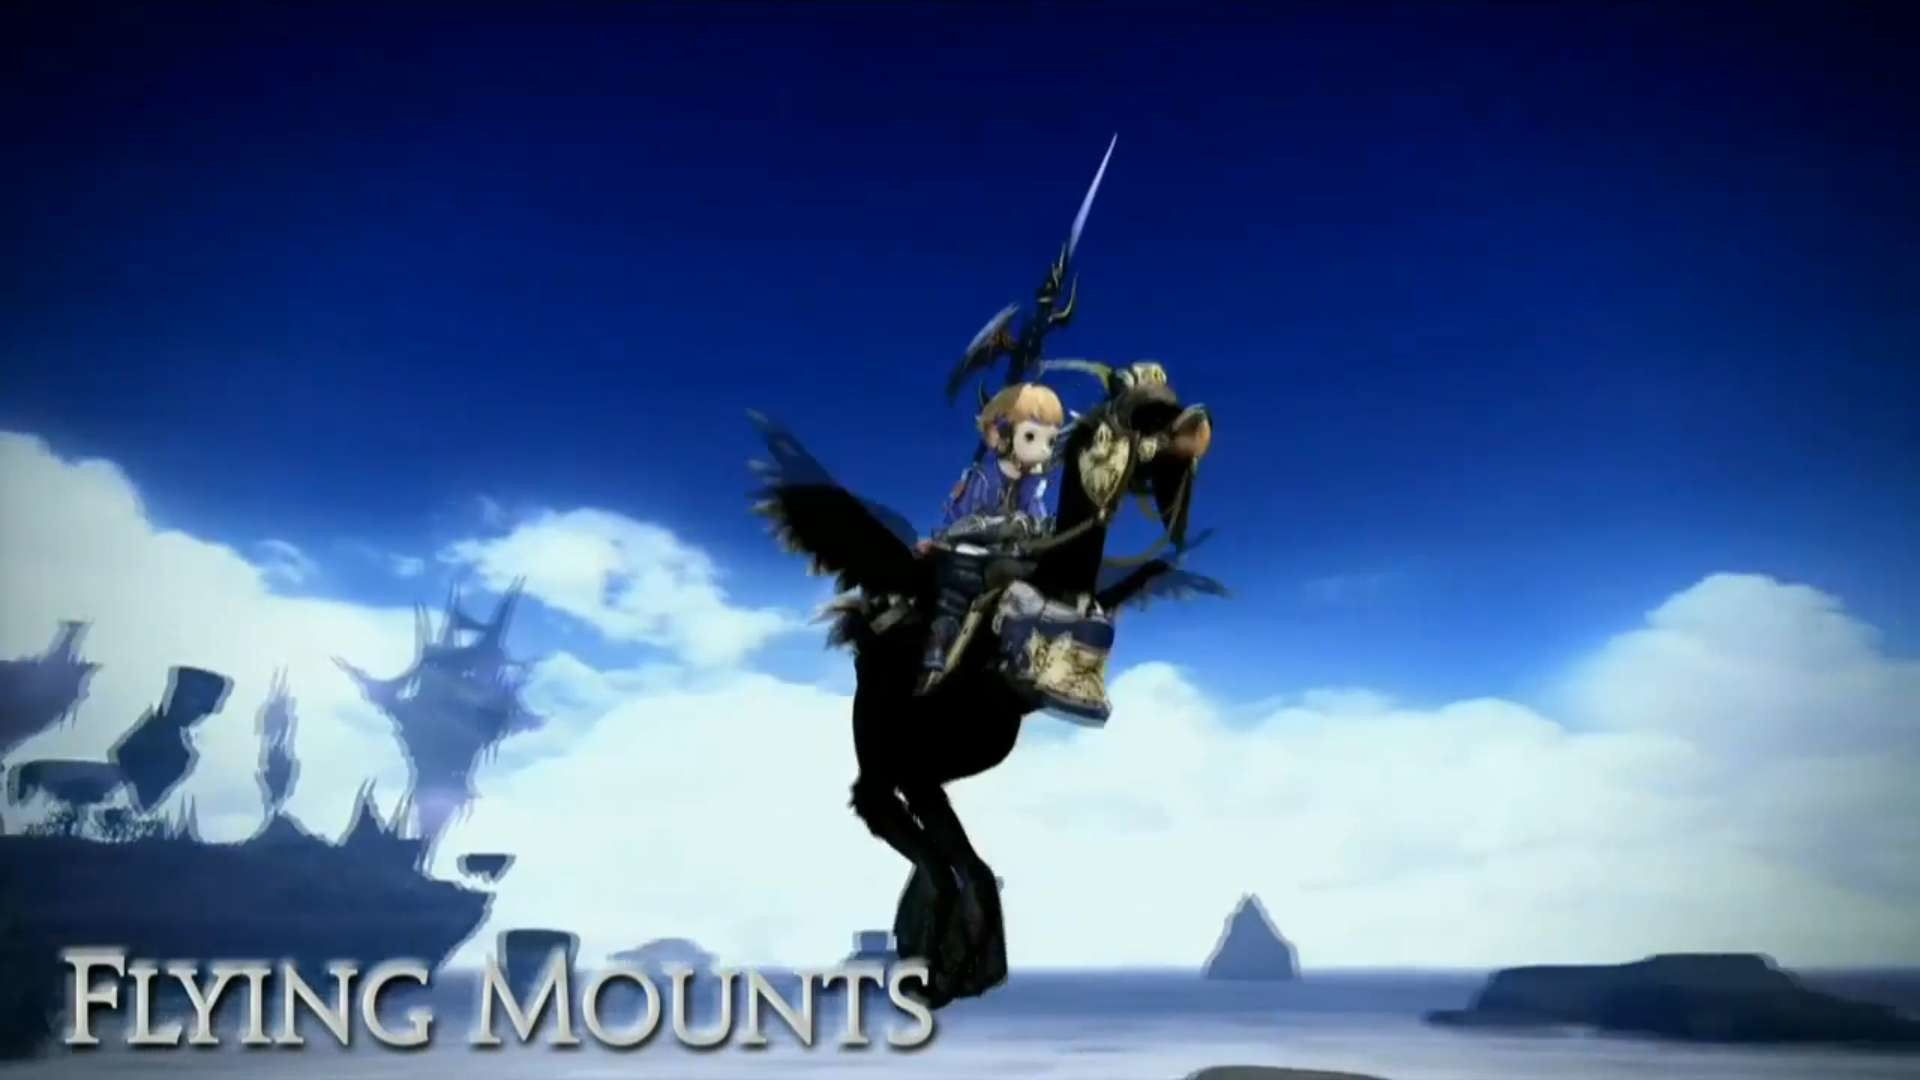 Final Fantasy XIV Dark Knight and Flying Mounts Confirmed, Gunner Teased;  Lots of New Expansion Info and Pictures Shared